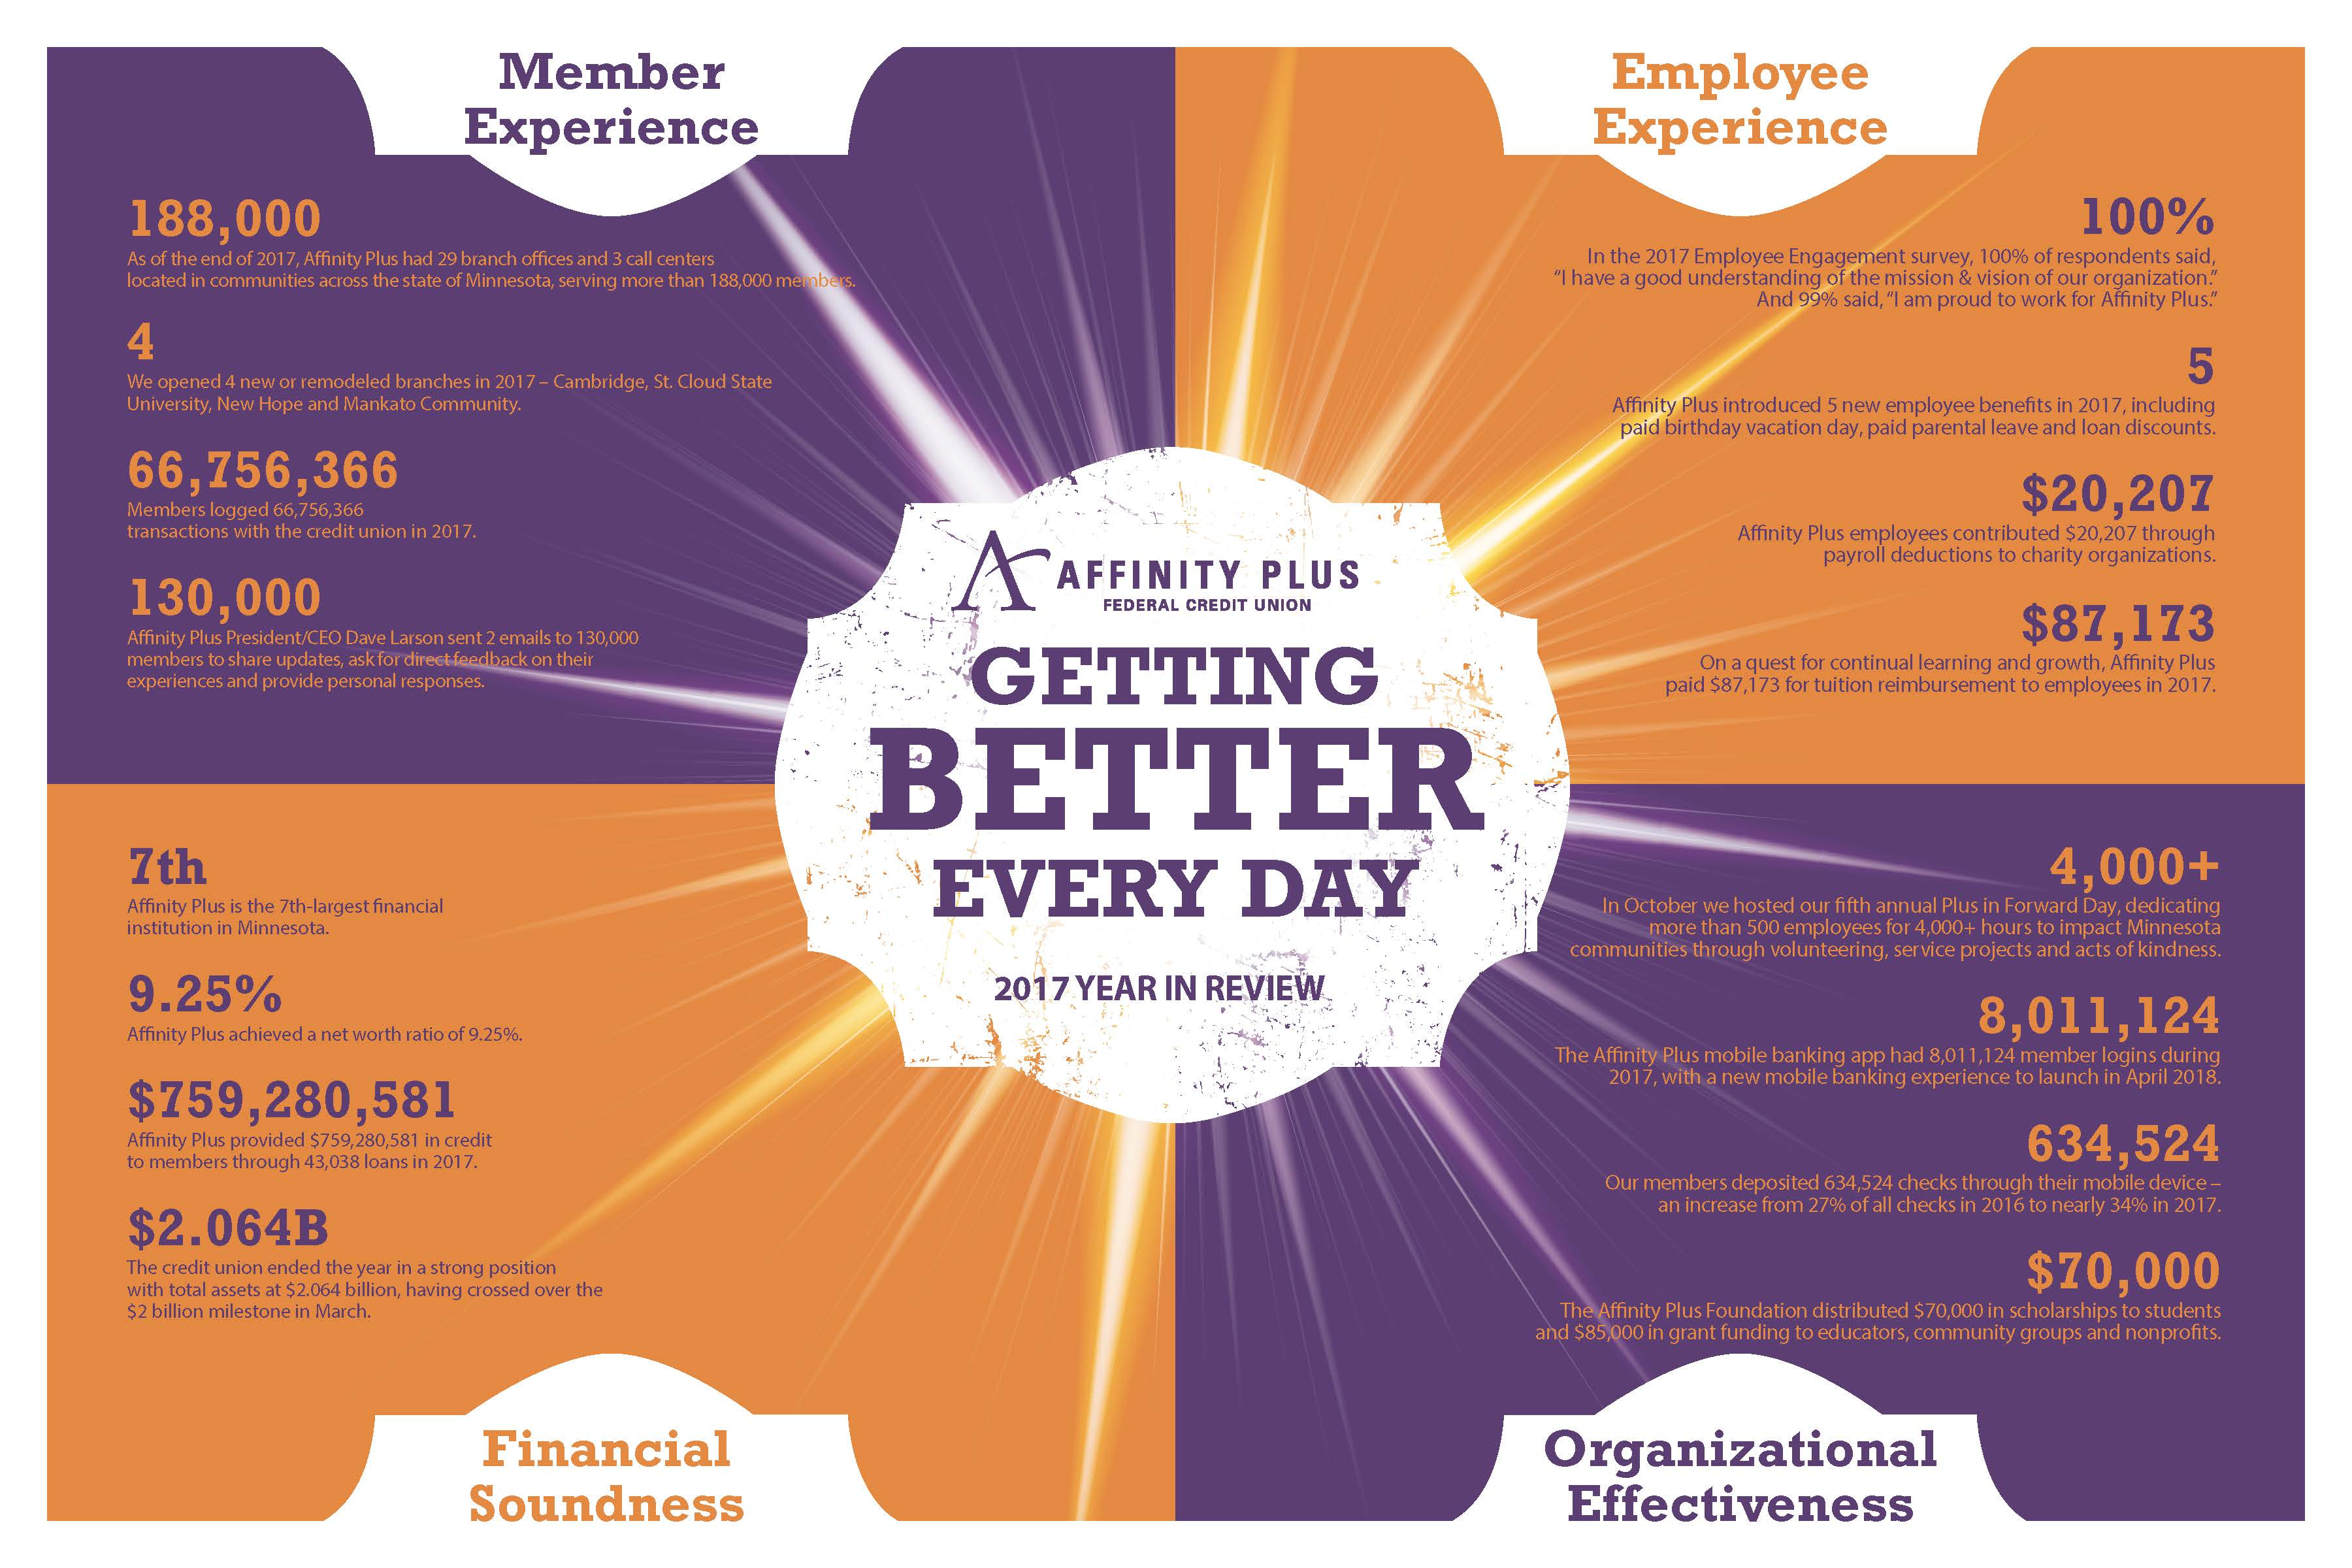 Affinity Plus Credit Union >> Affinity Plus Federal Credit Union Hosts 88th Annual Meeting Elects